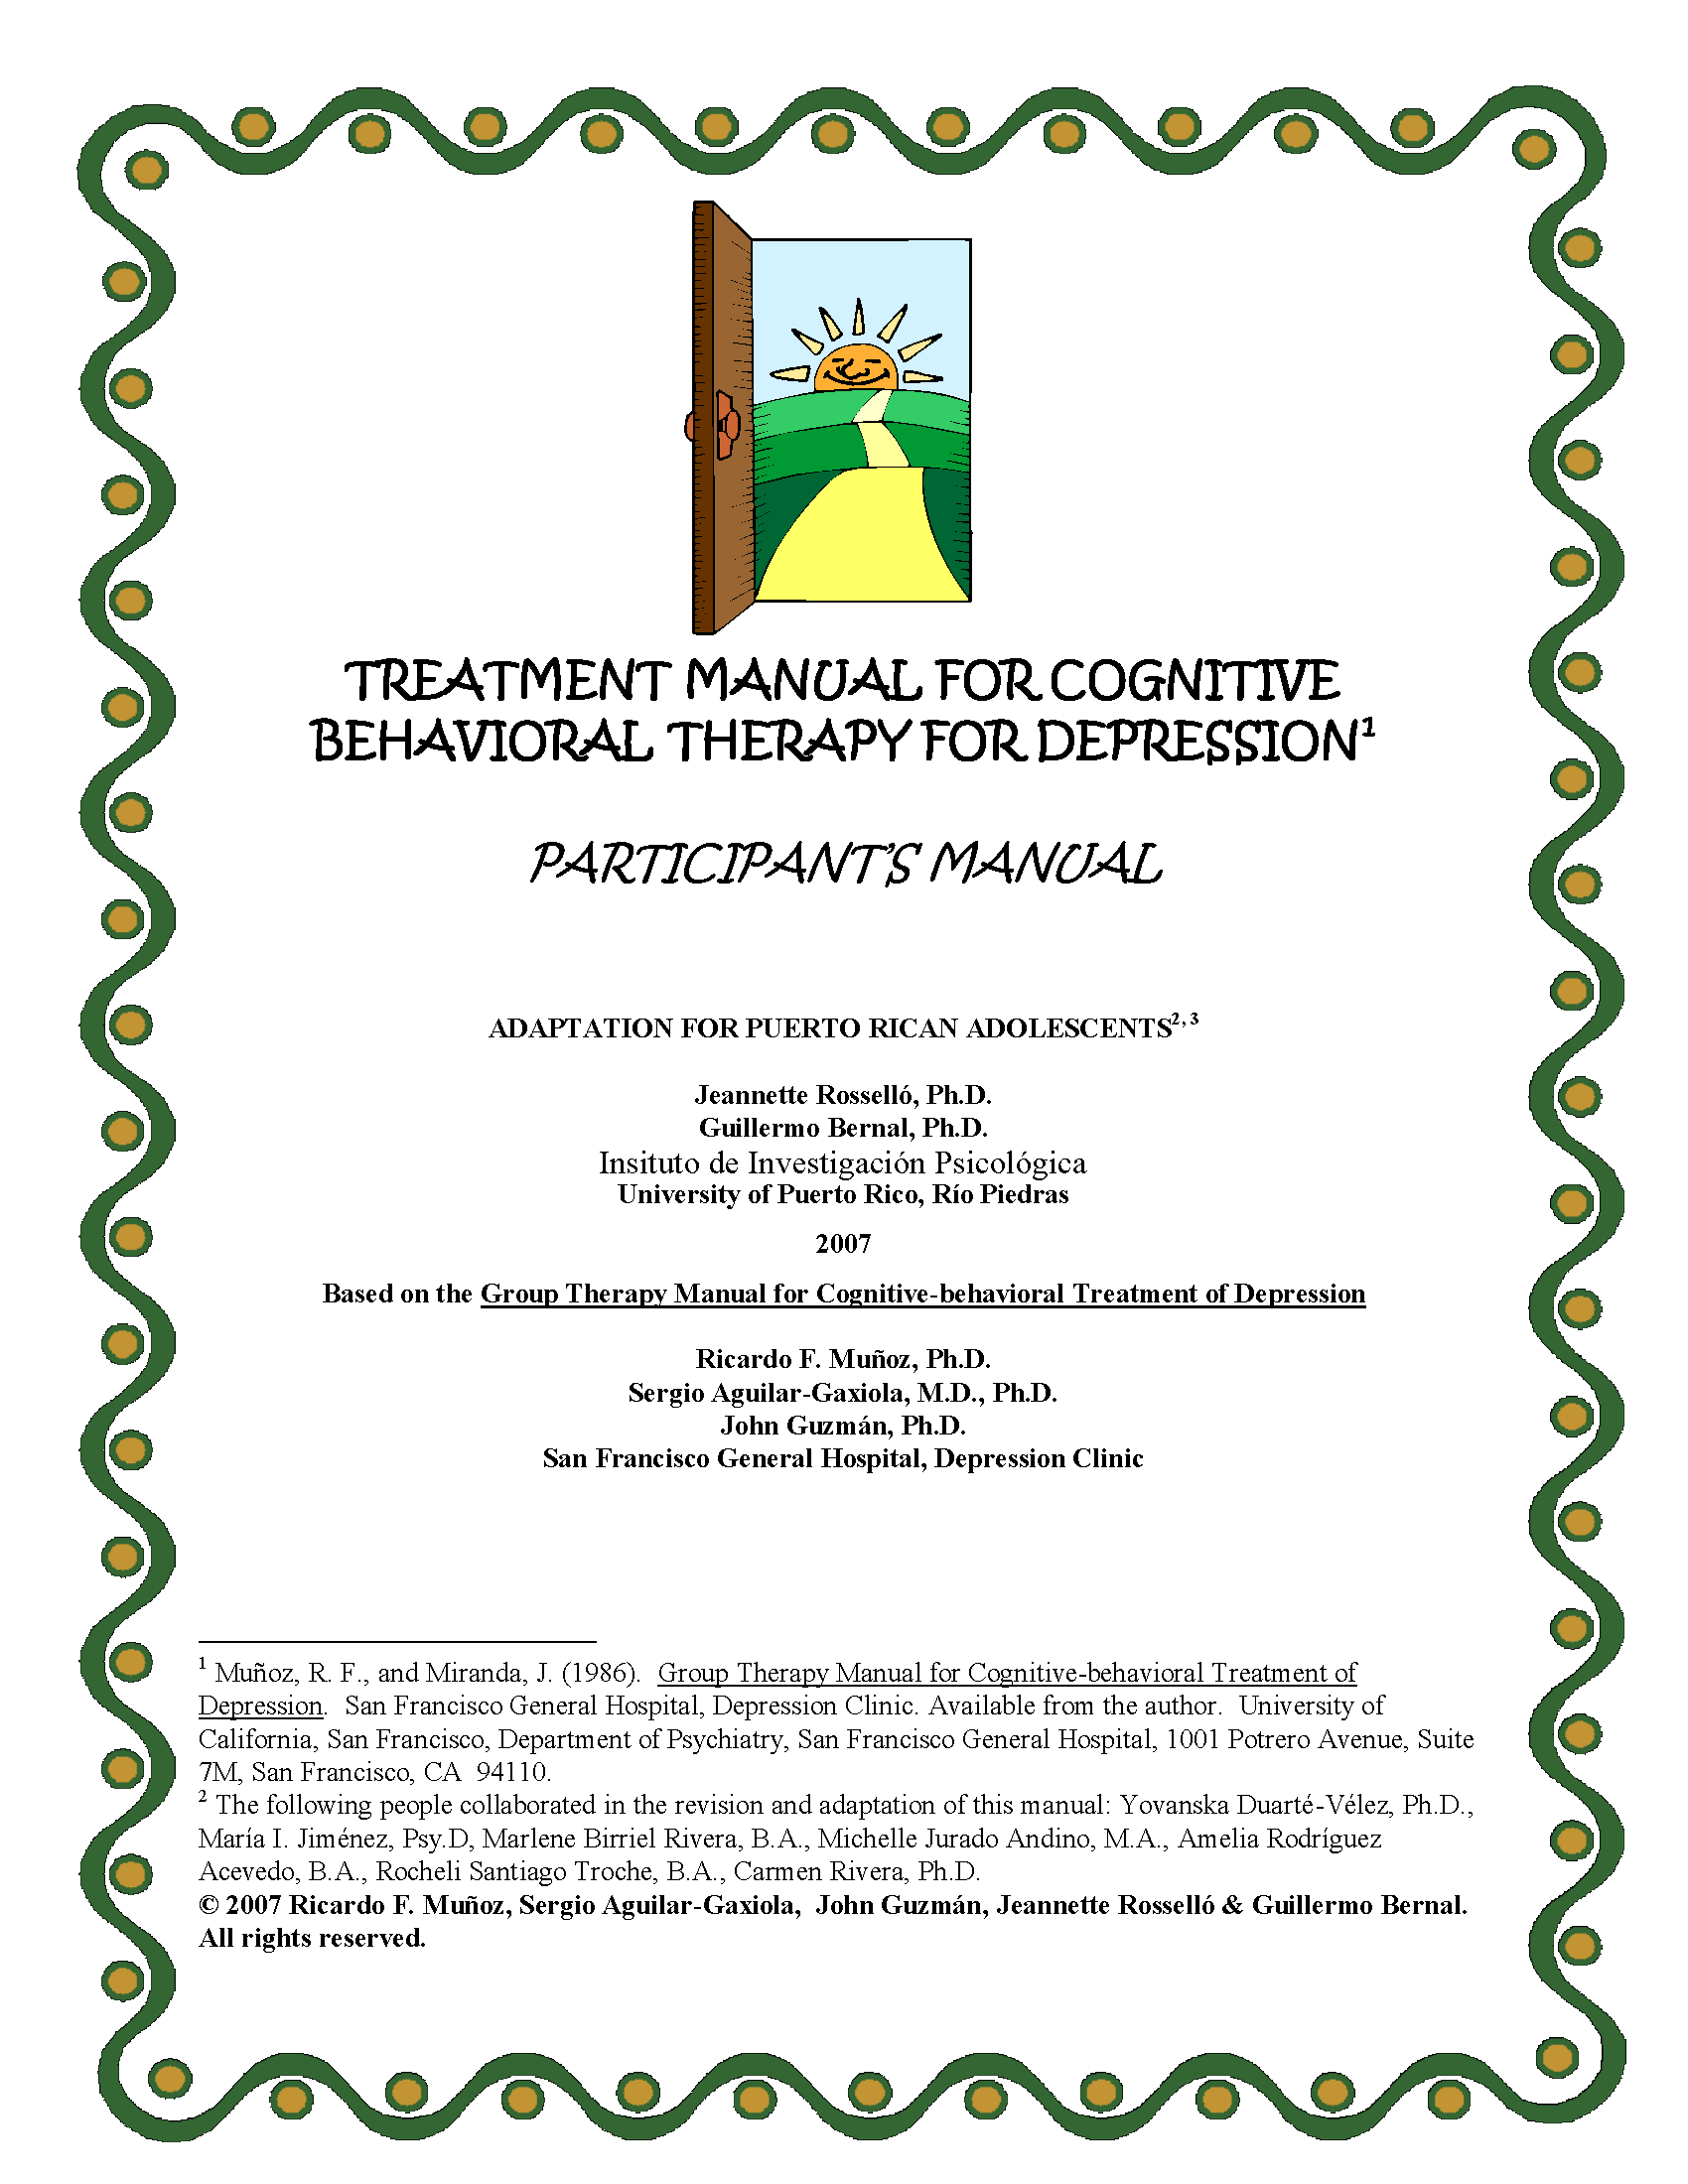 Trearment Manuals for Cognitive Behavioral Therapy for Depression -  Adaptation for Puerto Rican Adolescents